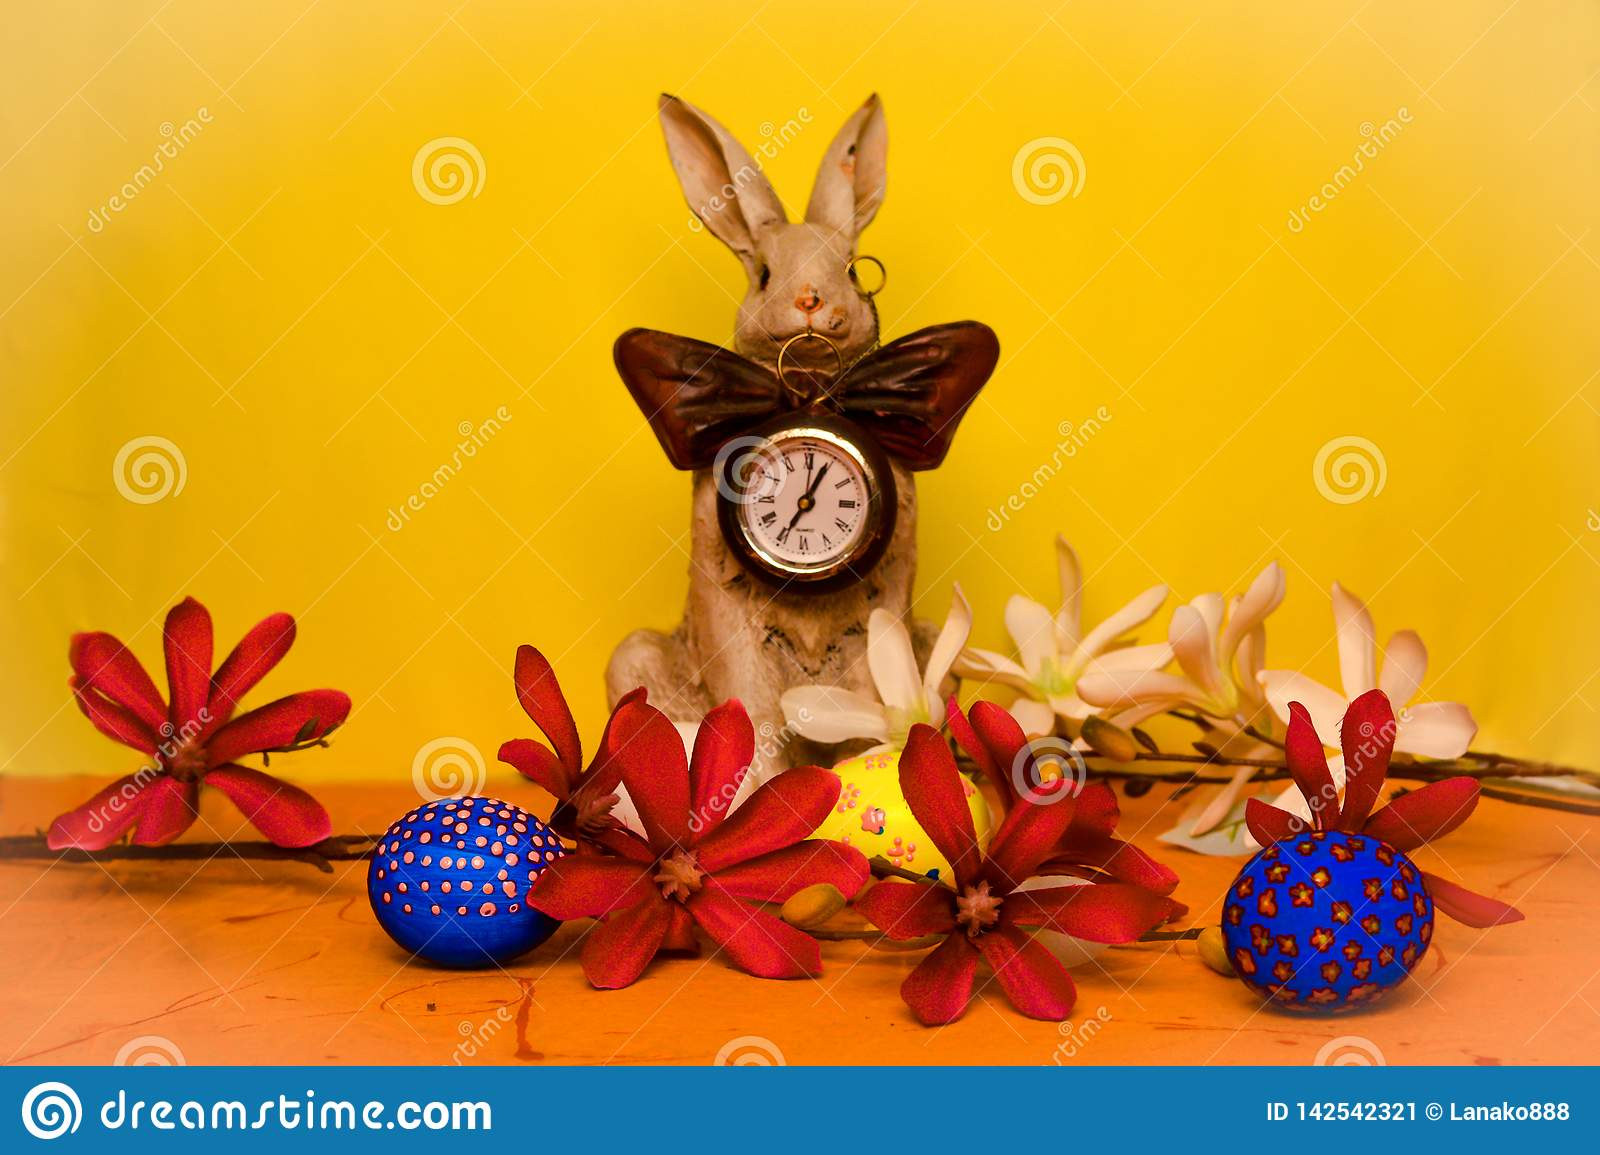 Easter bunny with a clock on his chest surrounded by spring flowers with blue, yellow and white eggs